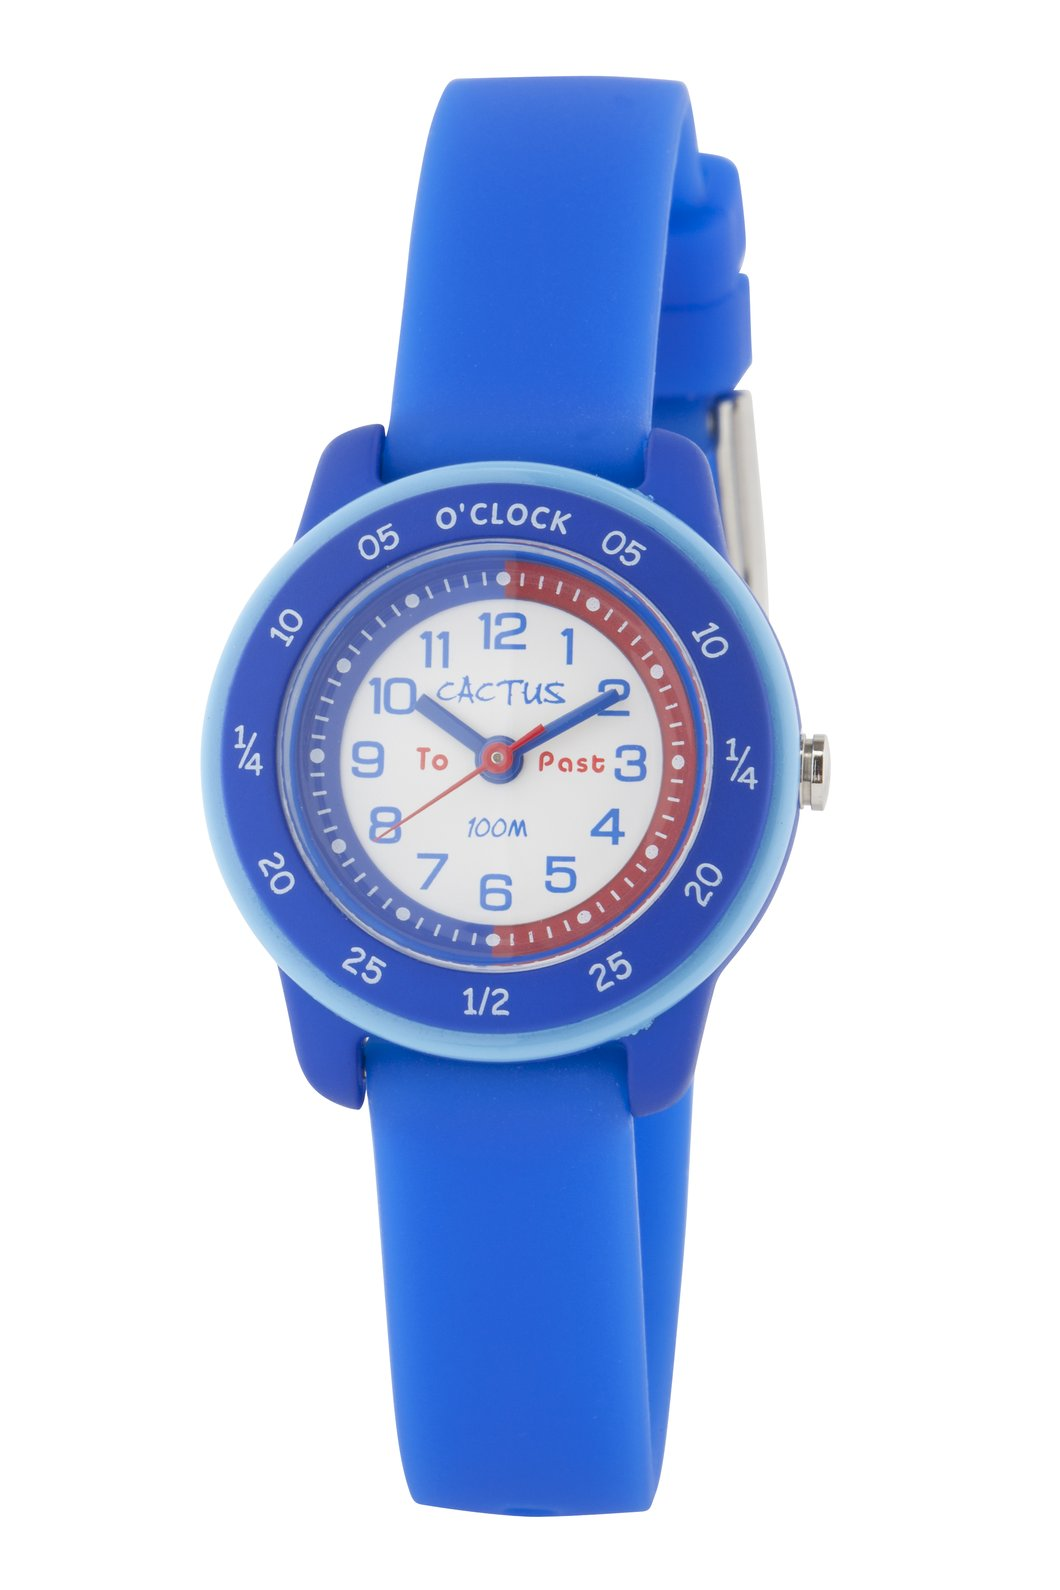 CACTUS Watches - Time Coach - Time Teacher Watch - CAC-95-M03